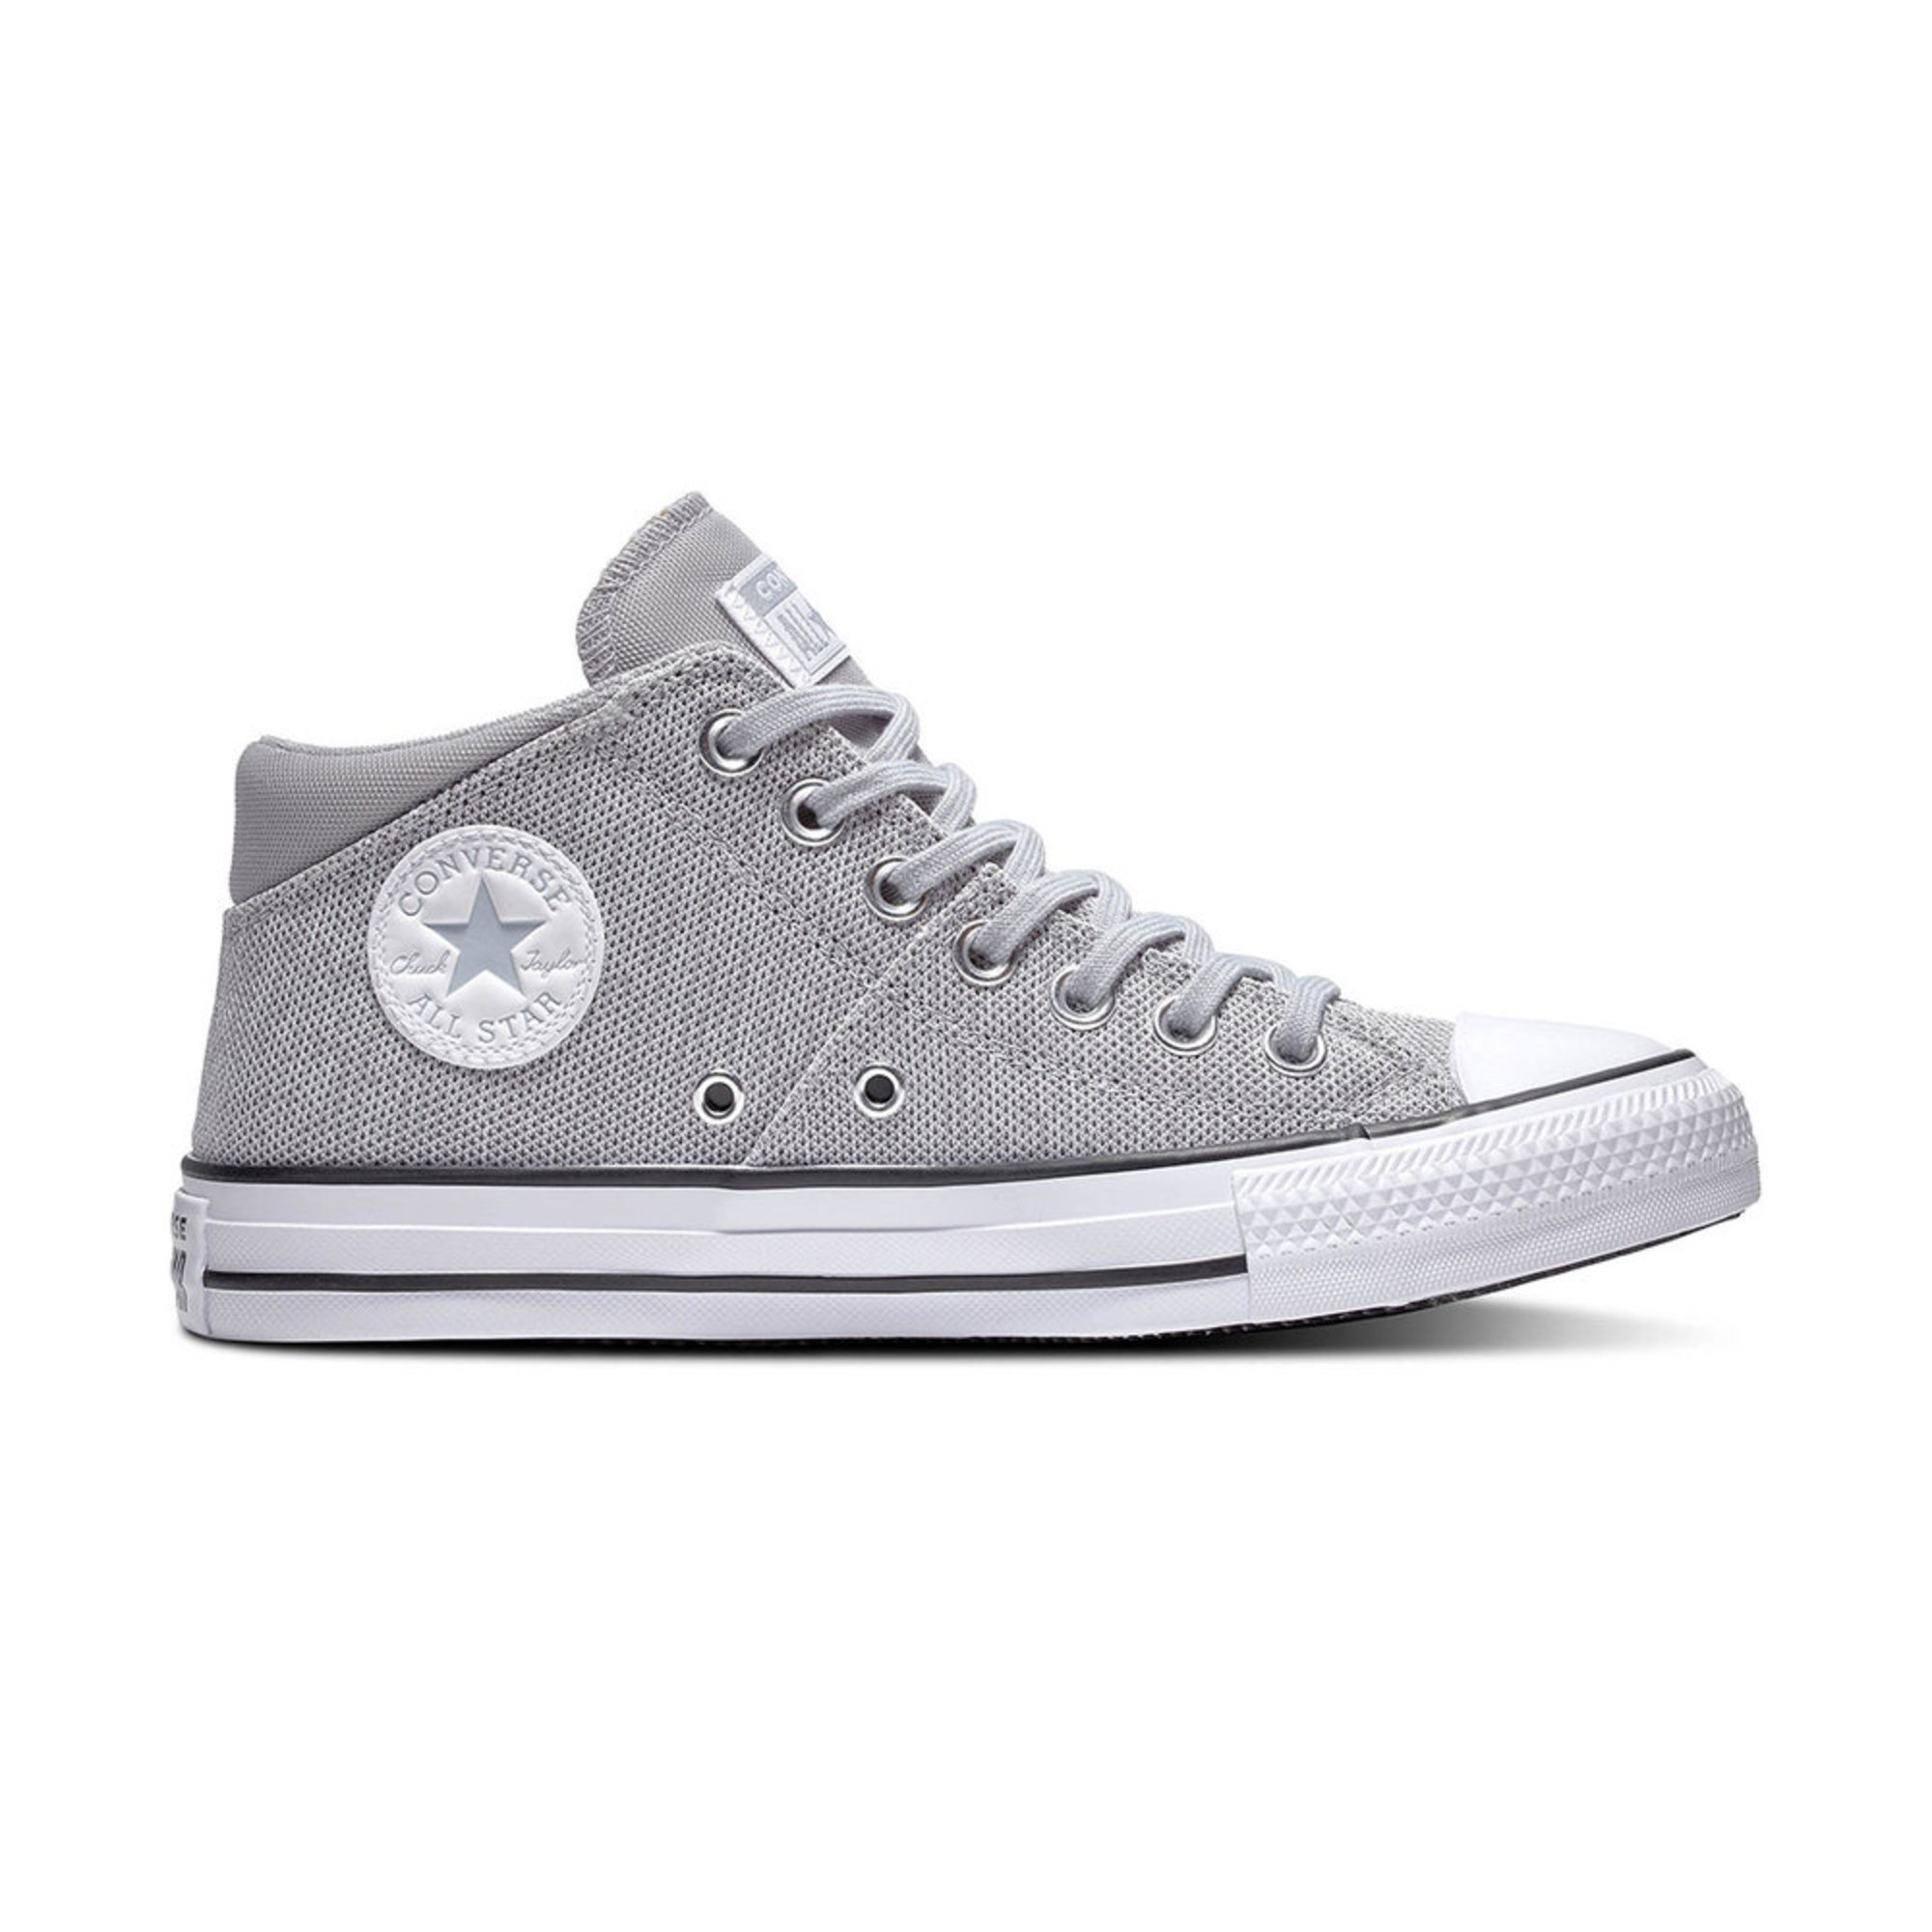 5de601c88af Converse. Converse Women s Chuck Taylor All Star Madison Low Top Sneaker